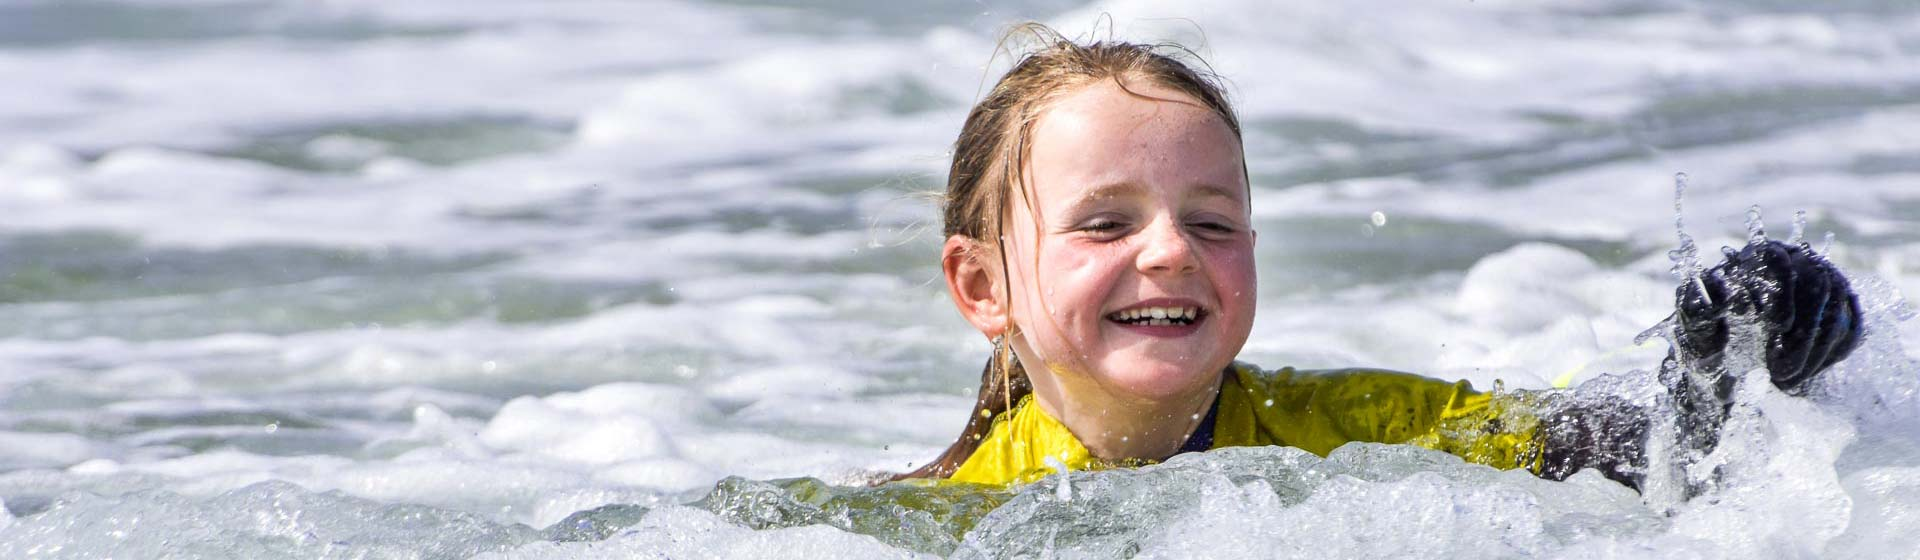 Waves Surf School, Cornwall - Contact to book surfing lessons